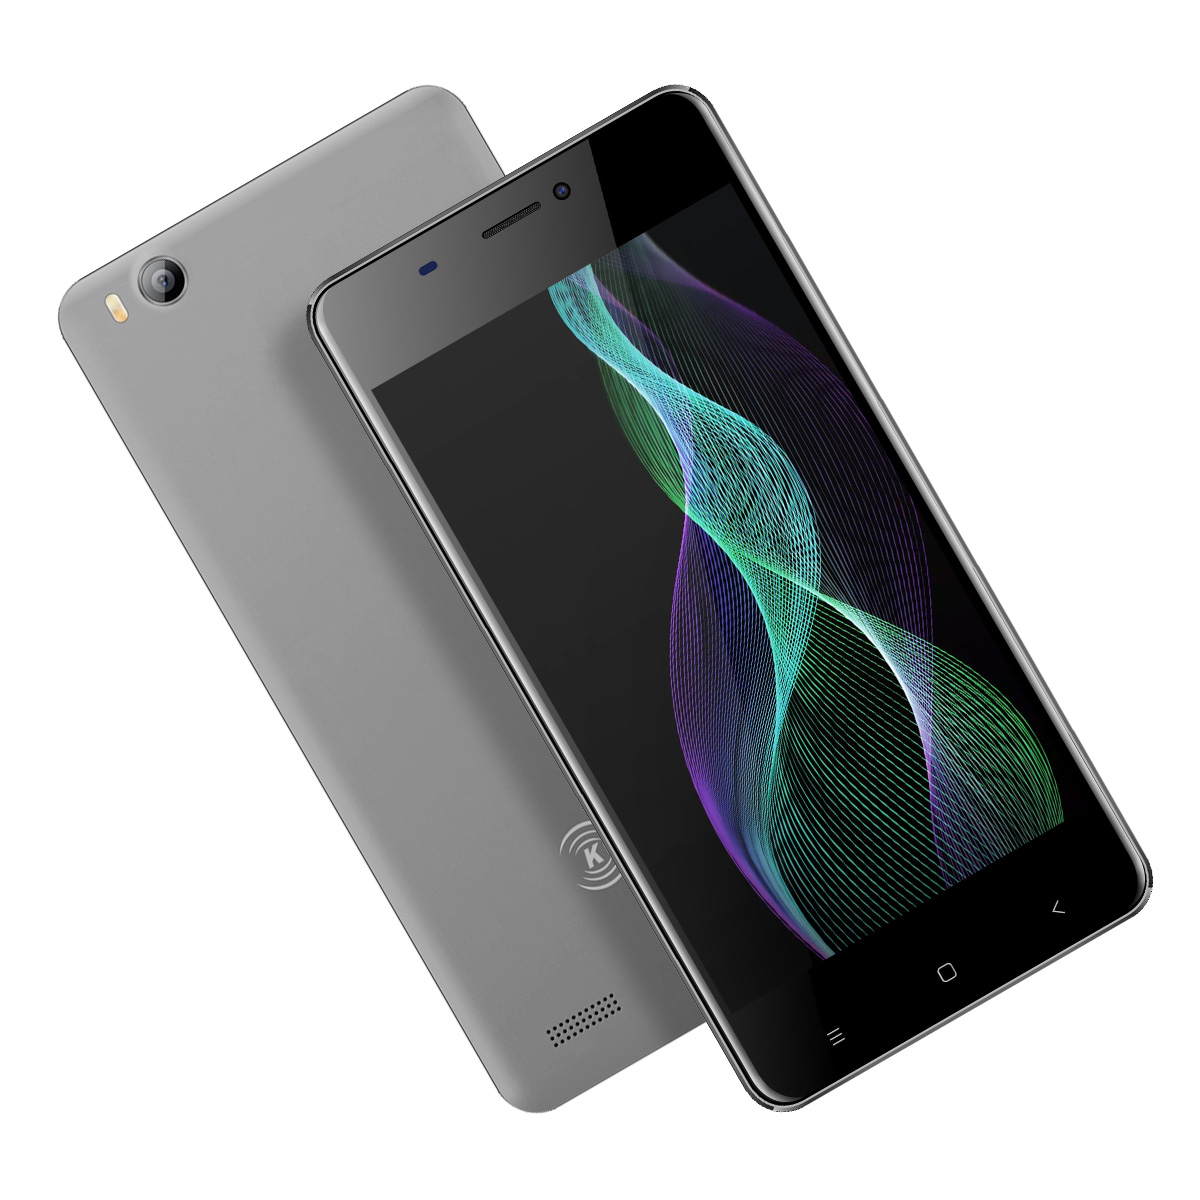 V5 3G Smartphone - Android 7.0 OS, Quad Core CPU 4.0-Inch Display, 1500mAh Battery, Front & Rear Camera (Gray)